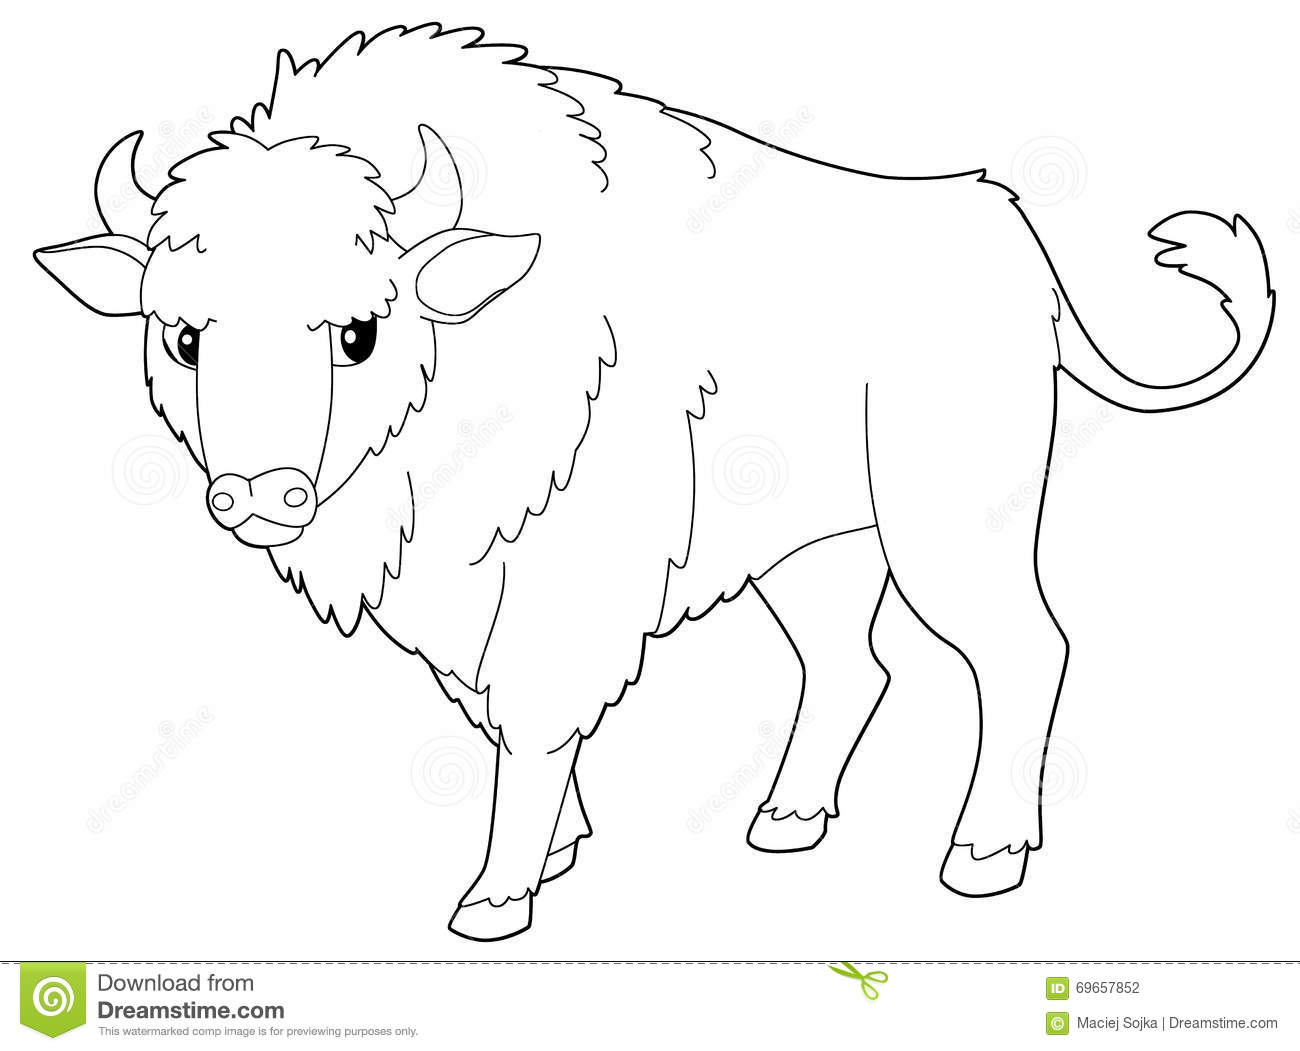 Cartoon Animal - Bison - Isolated - Coloring Page Stock Illustration ...